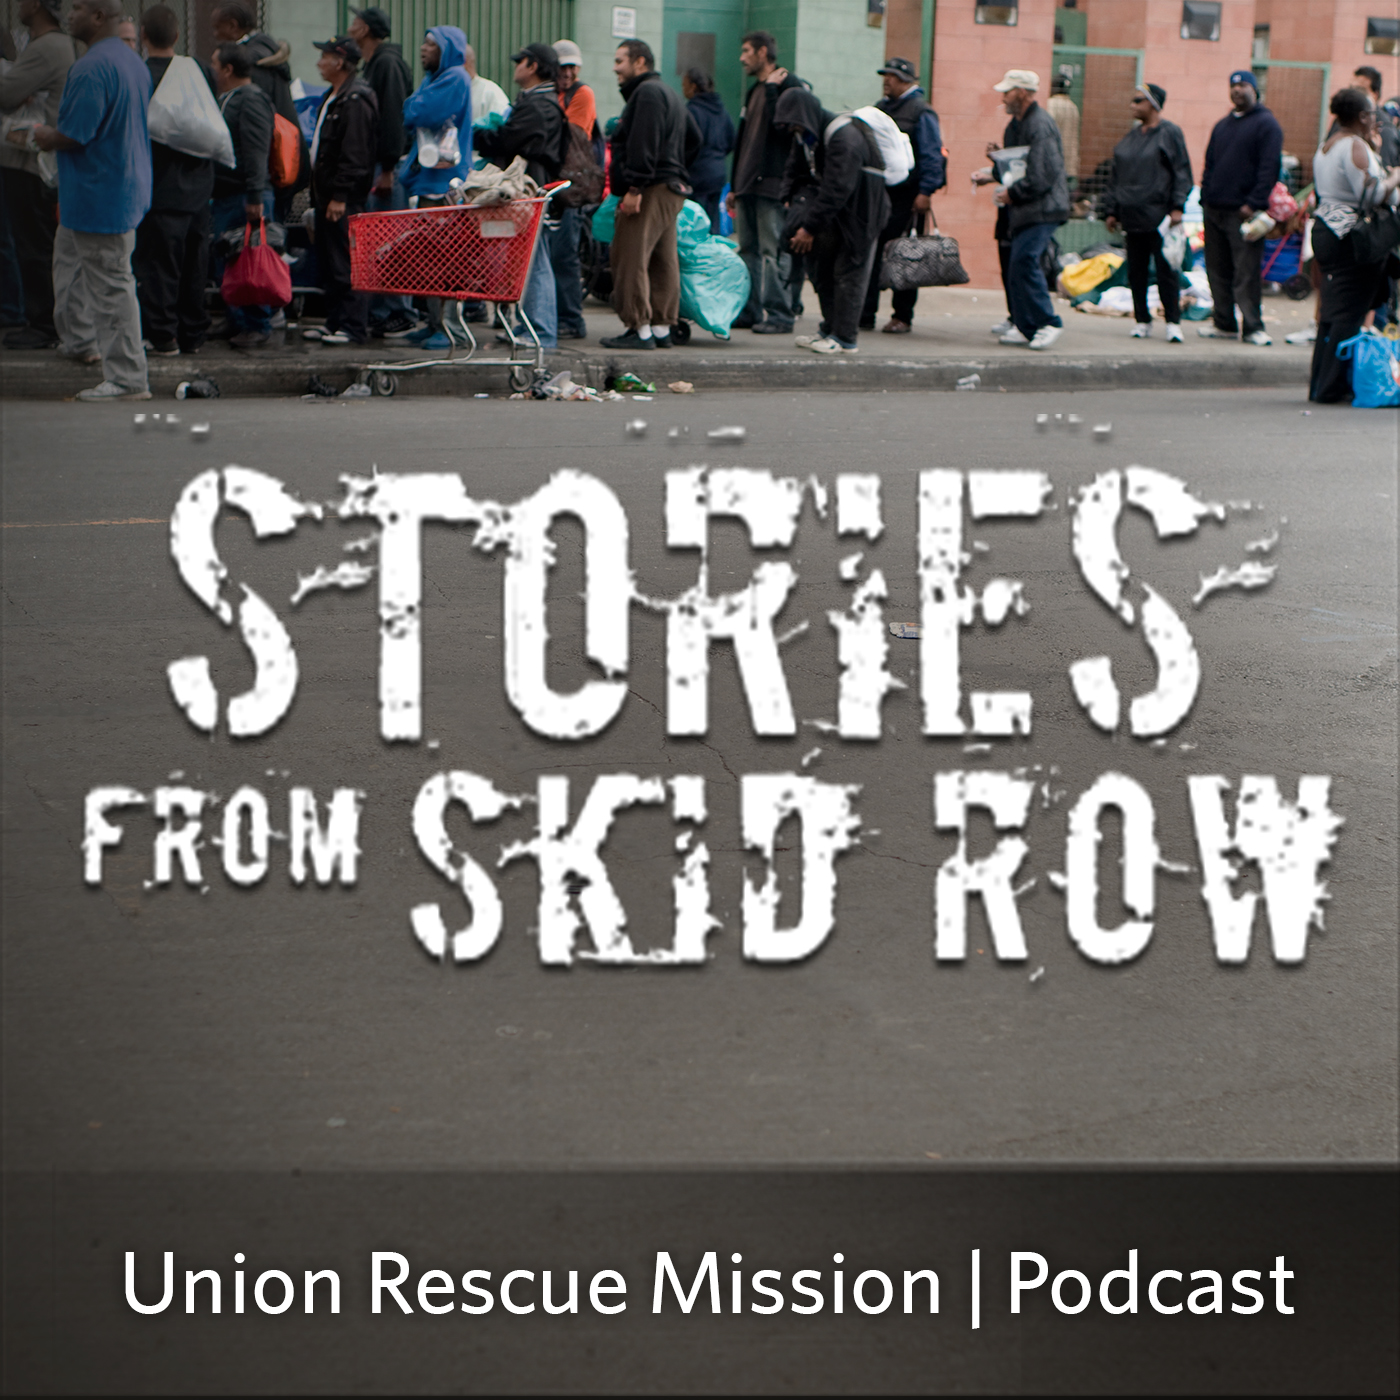 Stories From Skid Row logo